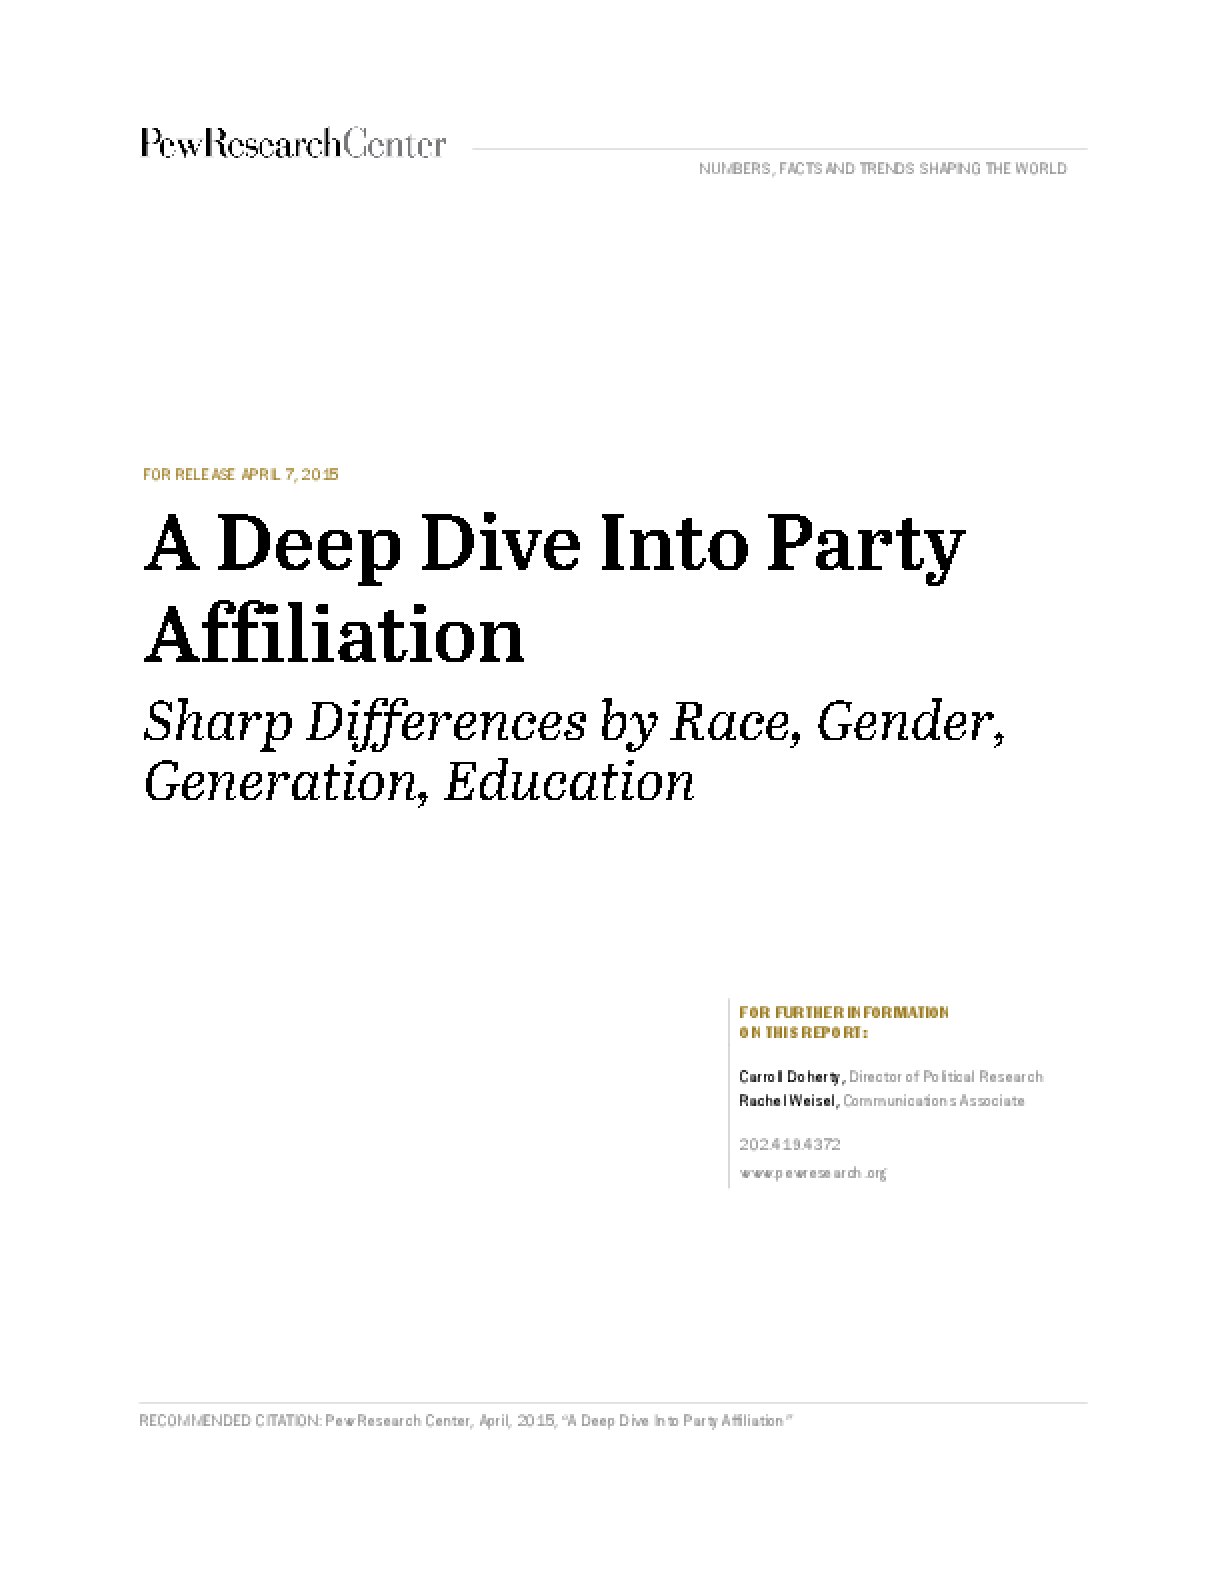 A Deep Dive Into Party Affiliation: Sharp Differences by Race, Gender, Generation, Education